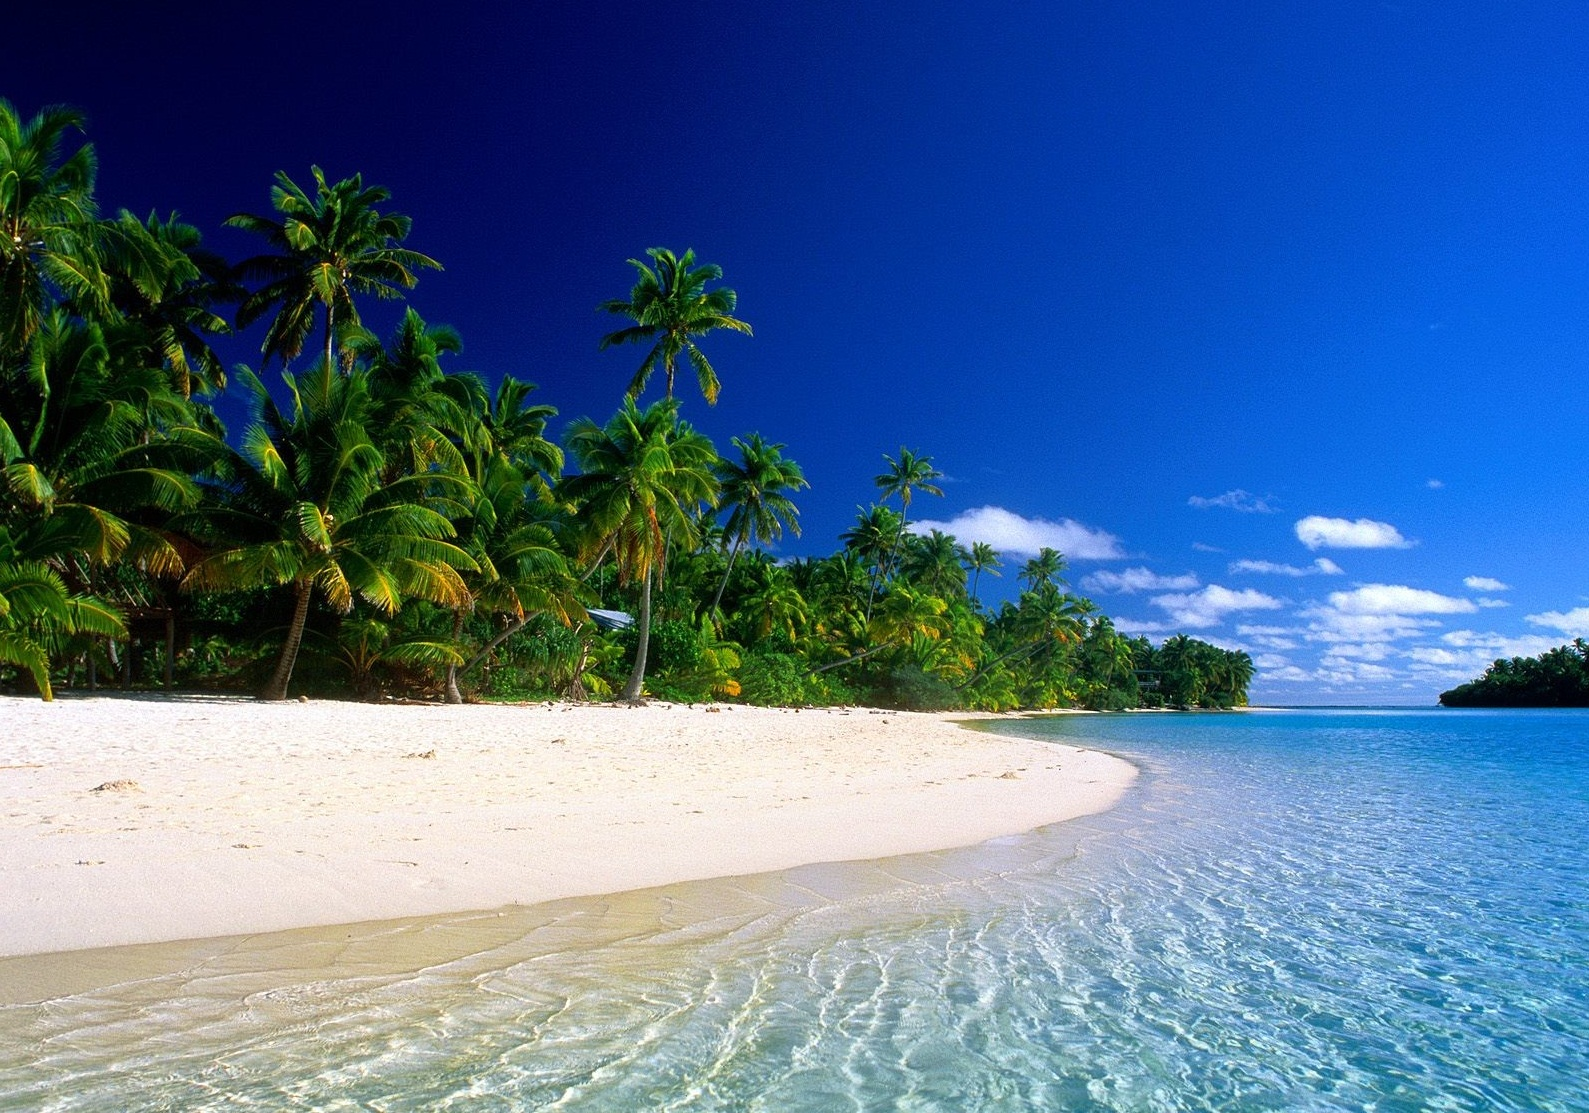 Beach Desktop Wallpaper Widescreen: Beaches HD Wallpapers